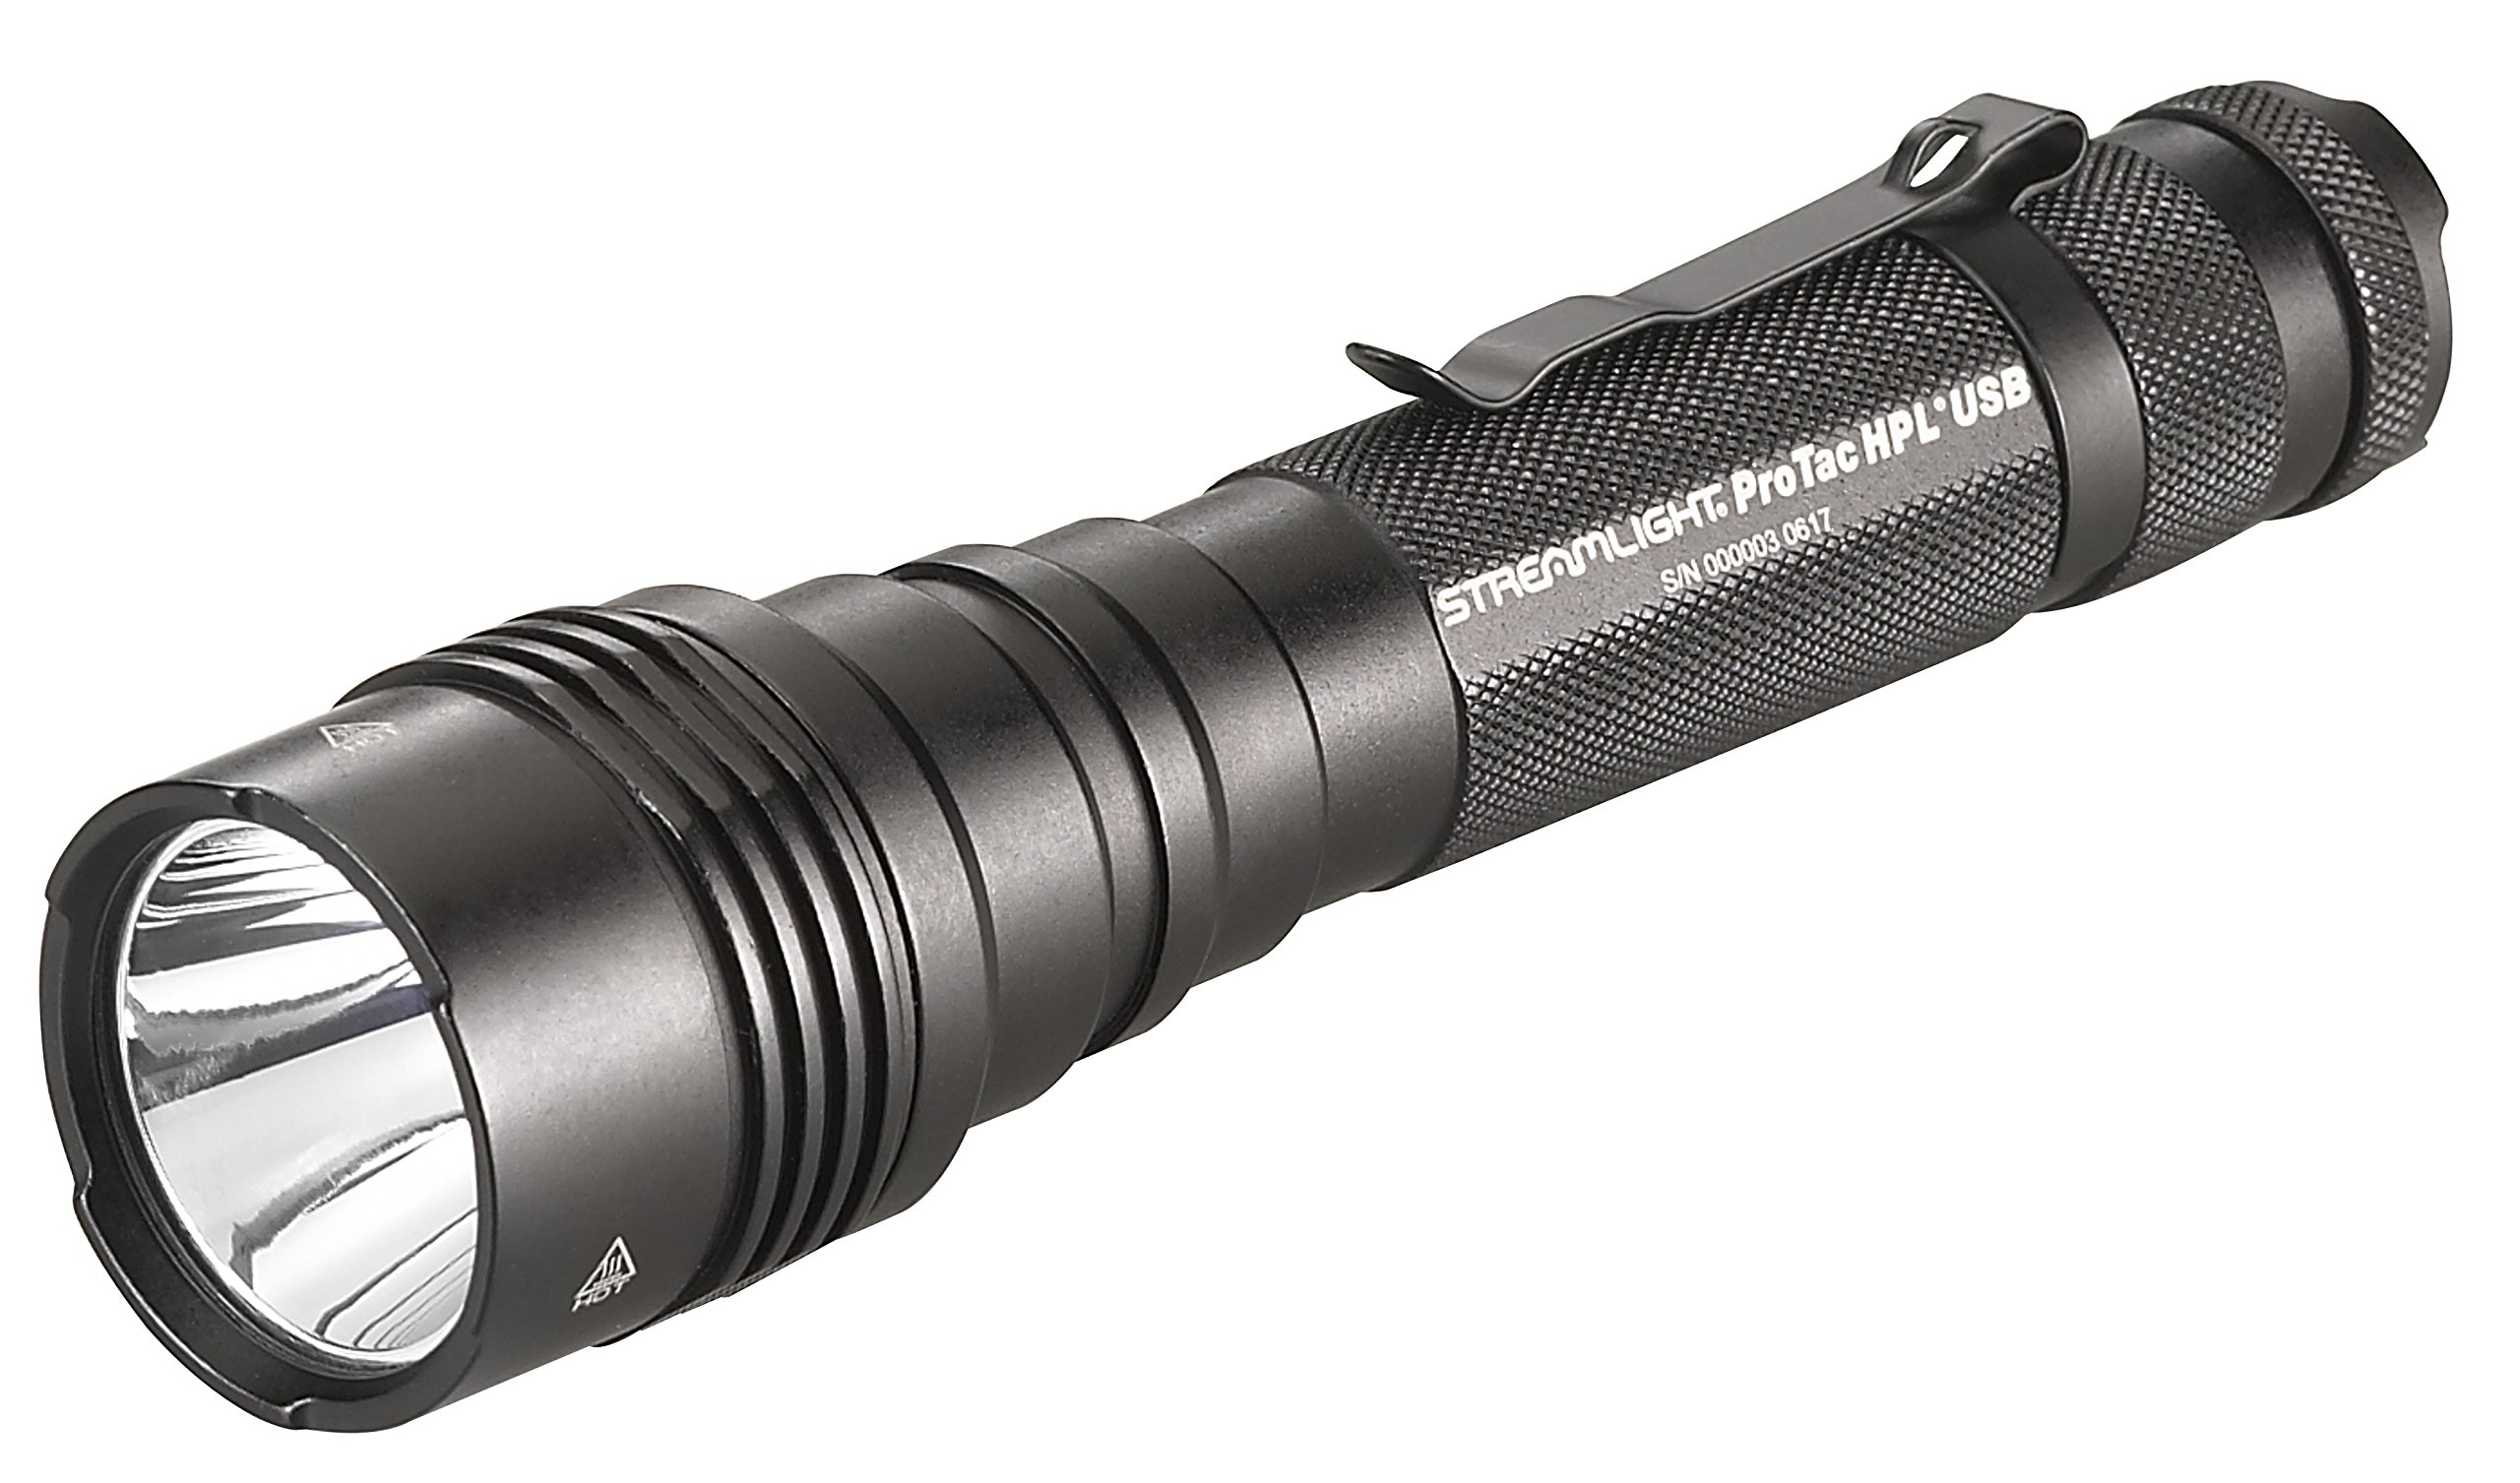 Streamlight 88077 ProTac HPL USB, with USB cord and Box